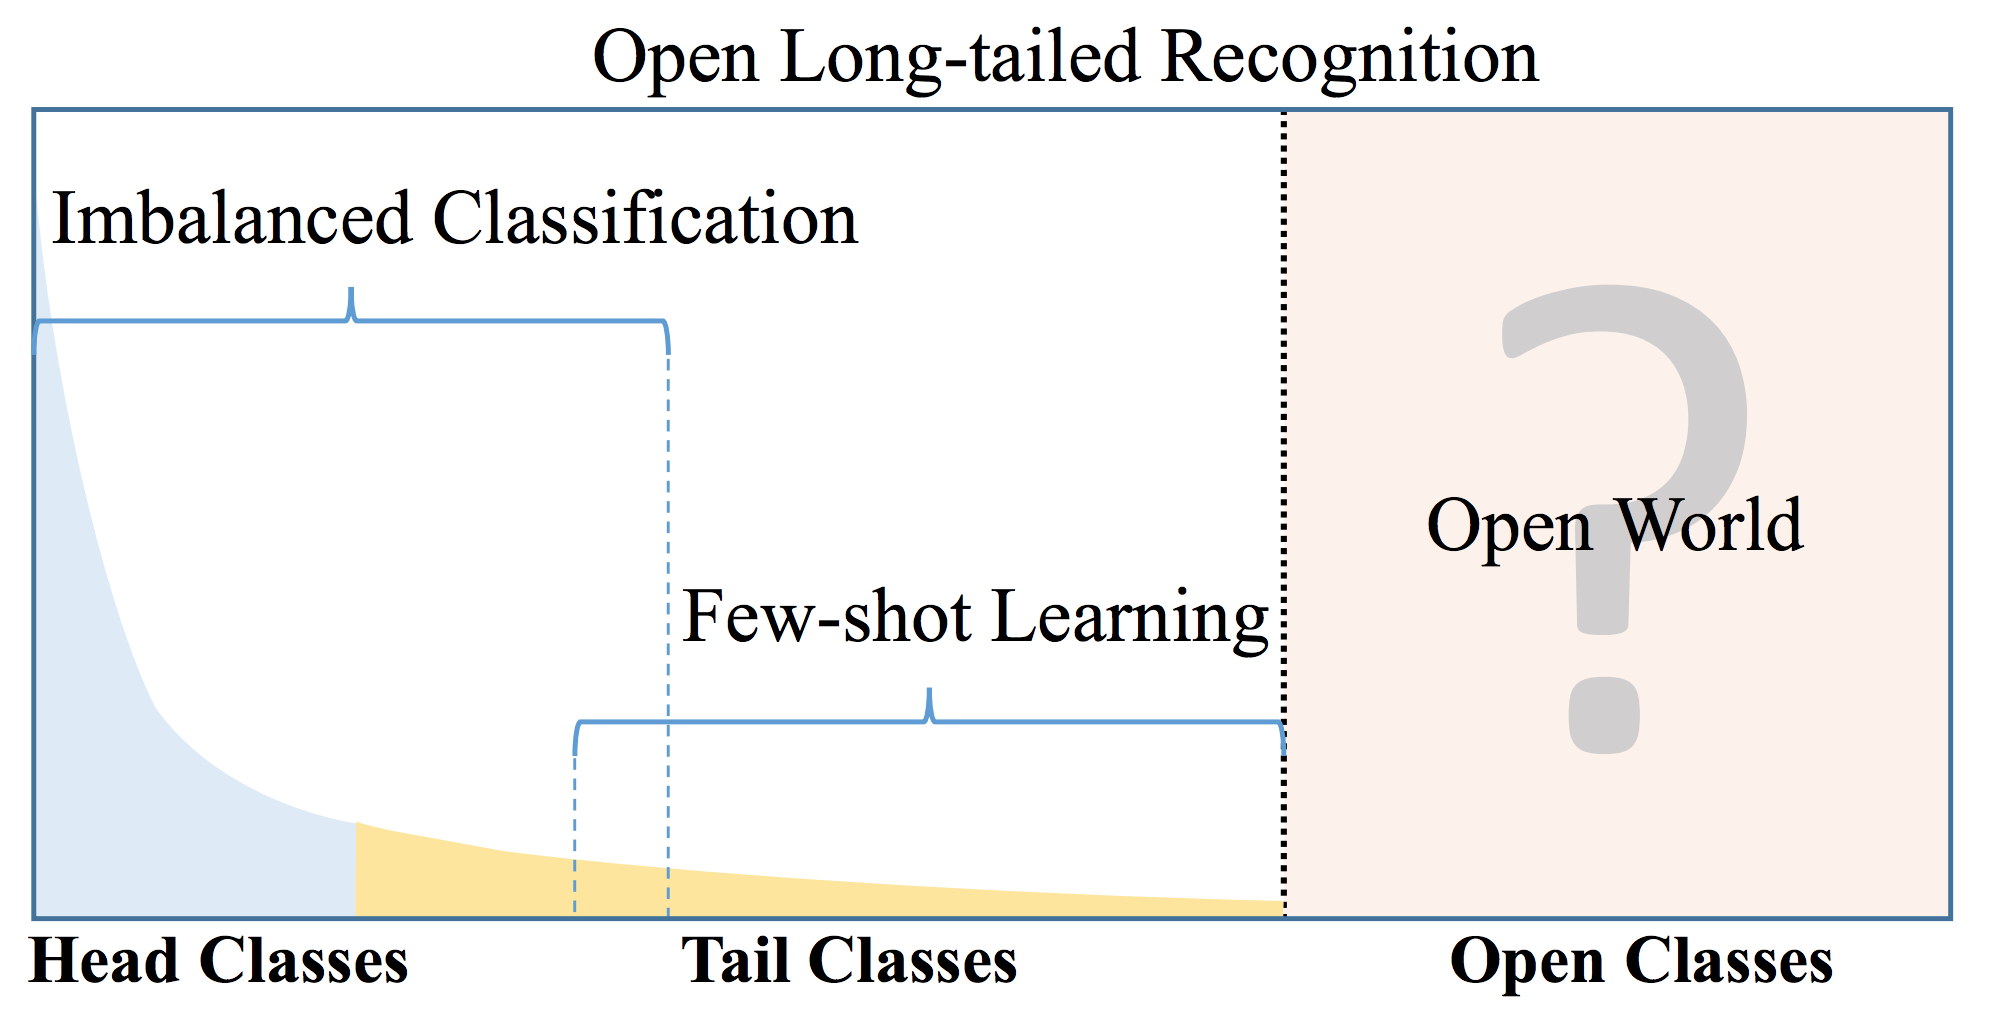 Large-Scale Long-Tailed Recognition in an Open World – The Berkeley